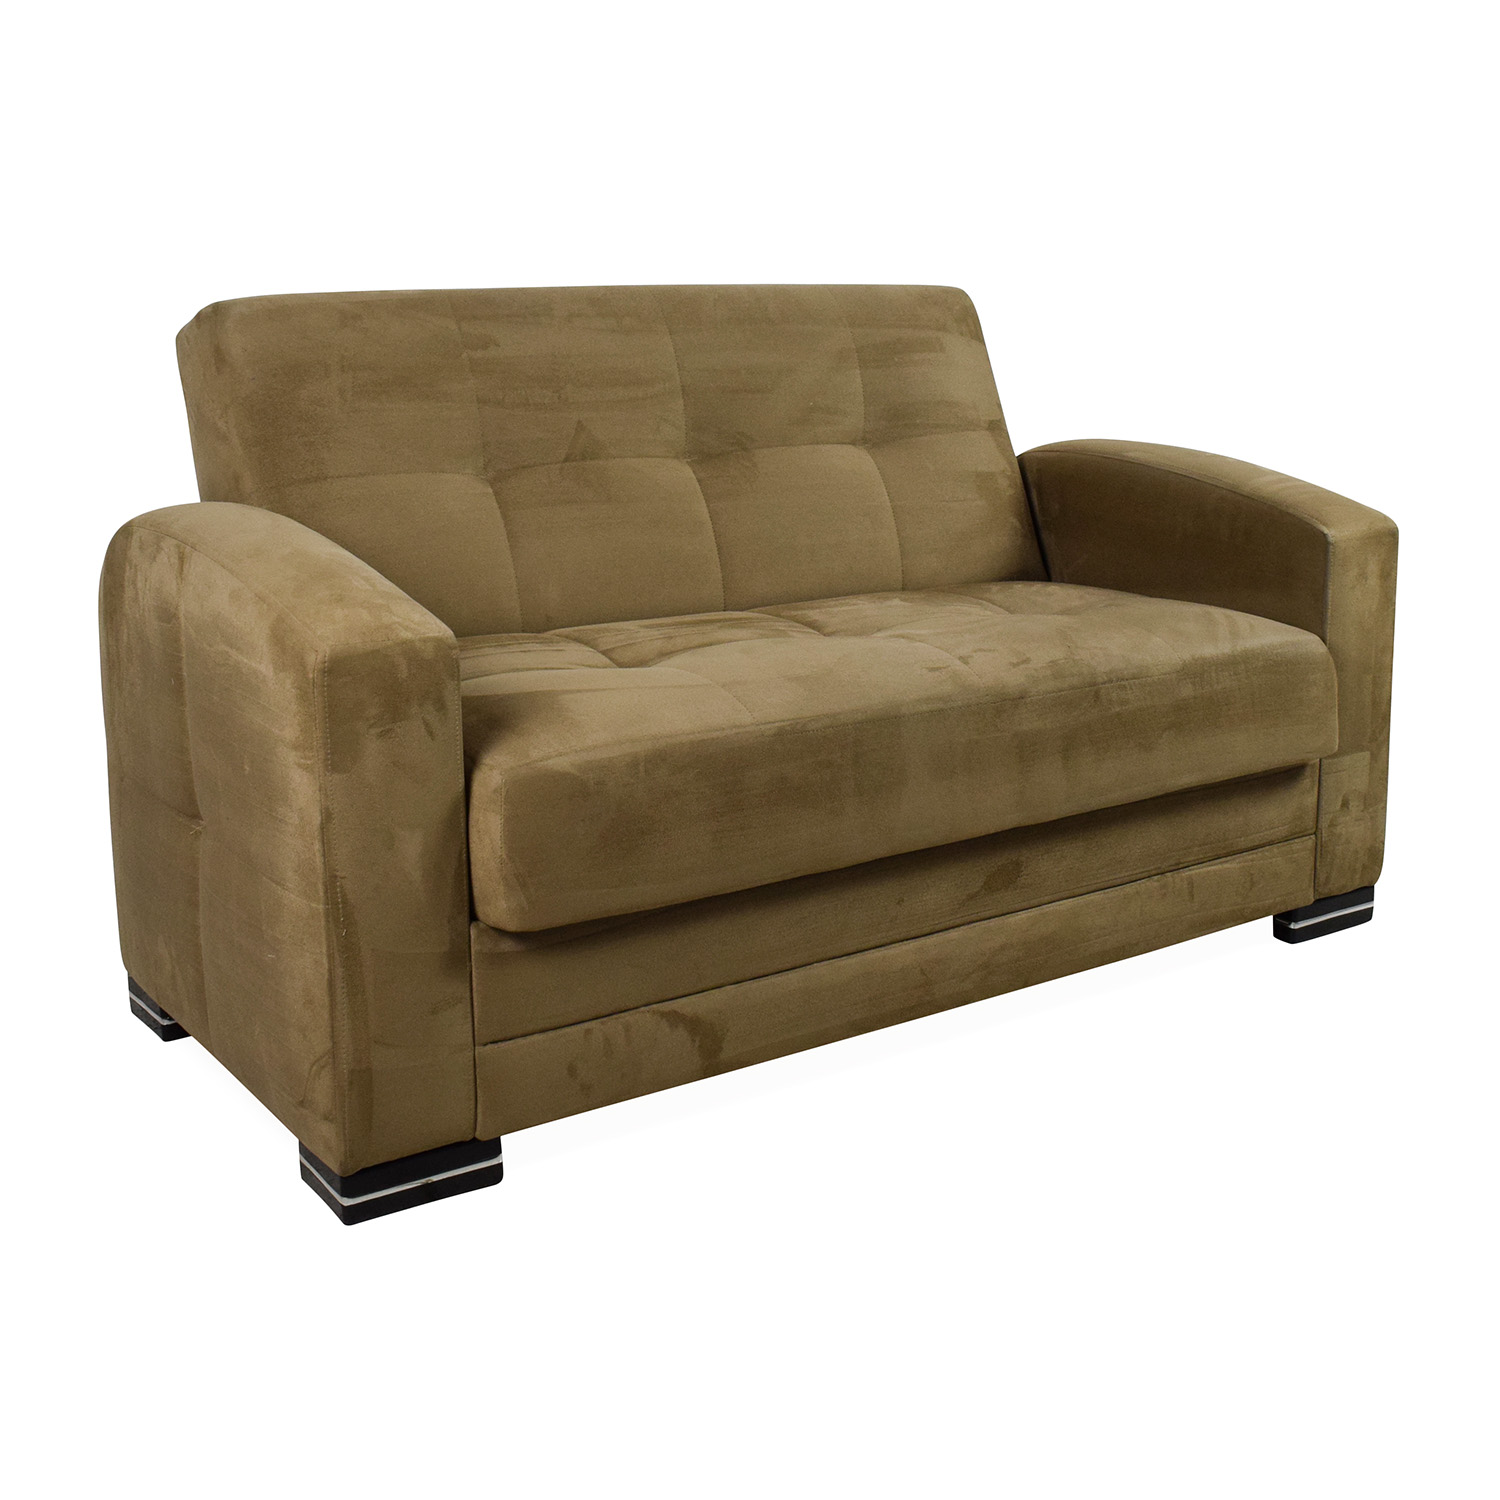 56 off istikbal istikbal loveseat with storage sofas Storage loveseat